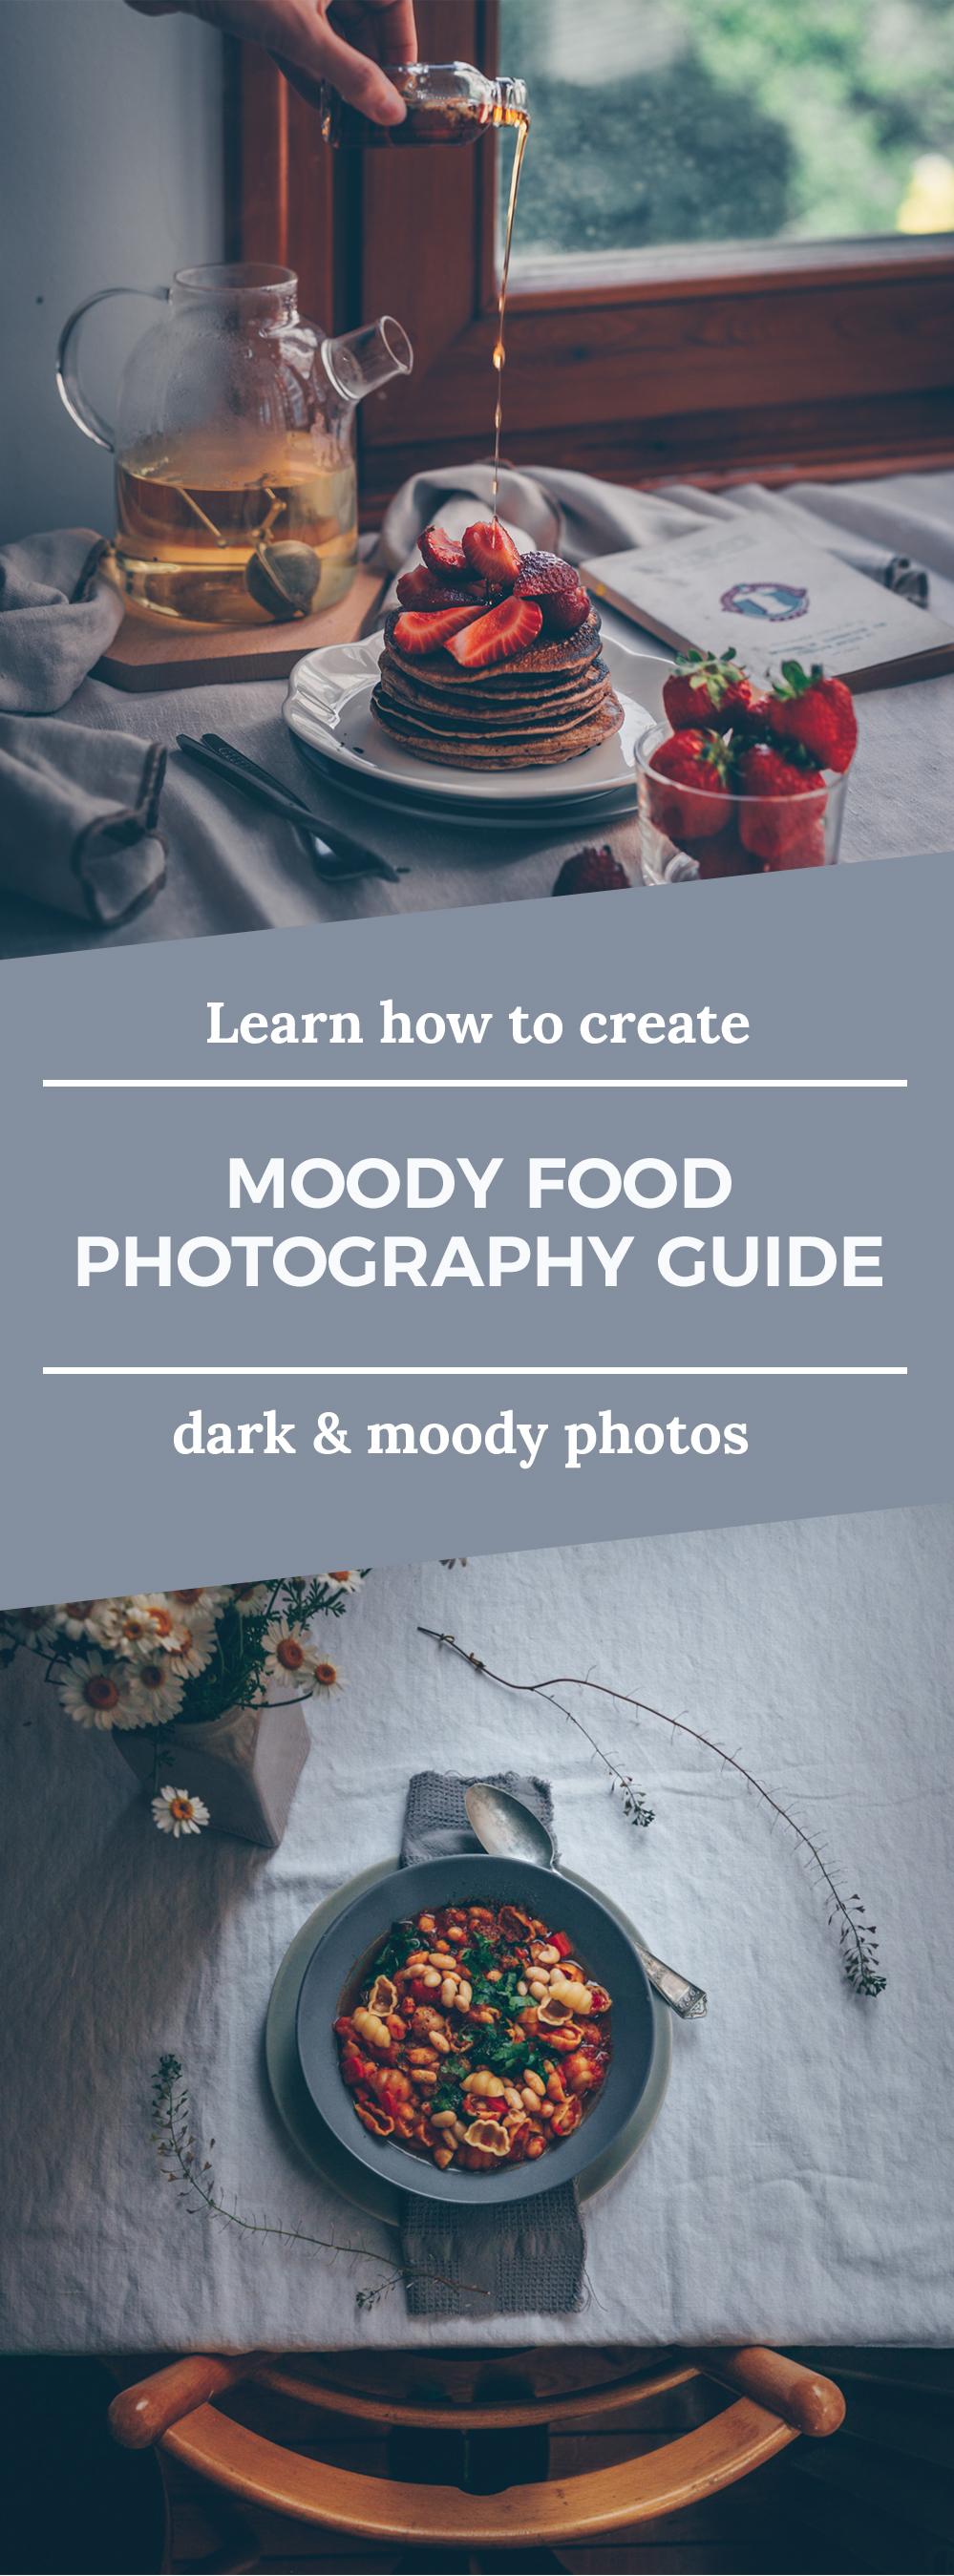 Moody Food Photography Guide - Learn how to create dark and moody images. This dark and moody food photography guide includes three sections: Styling the food, Shooting a moody scene and editing moody photos.